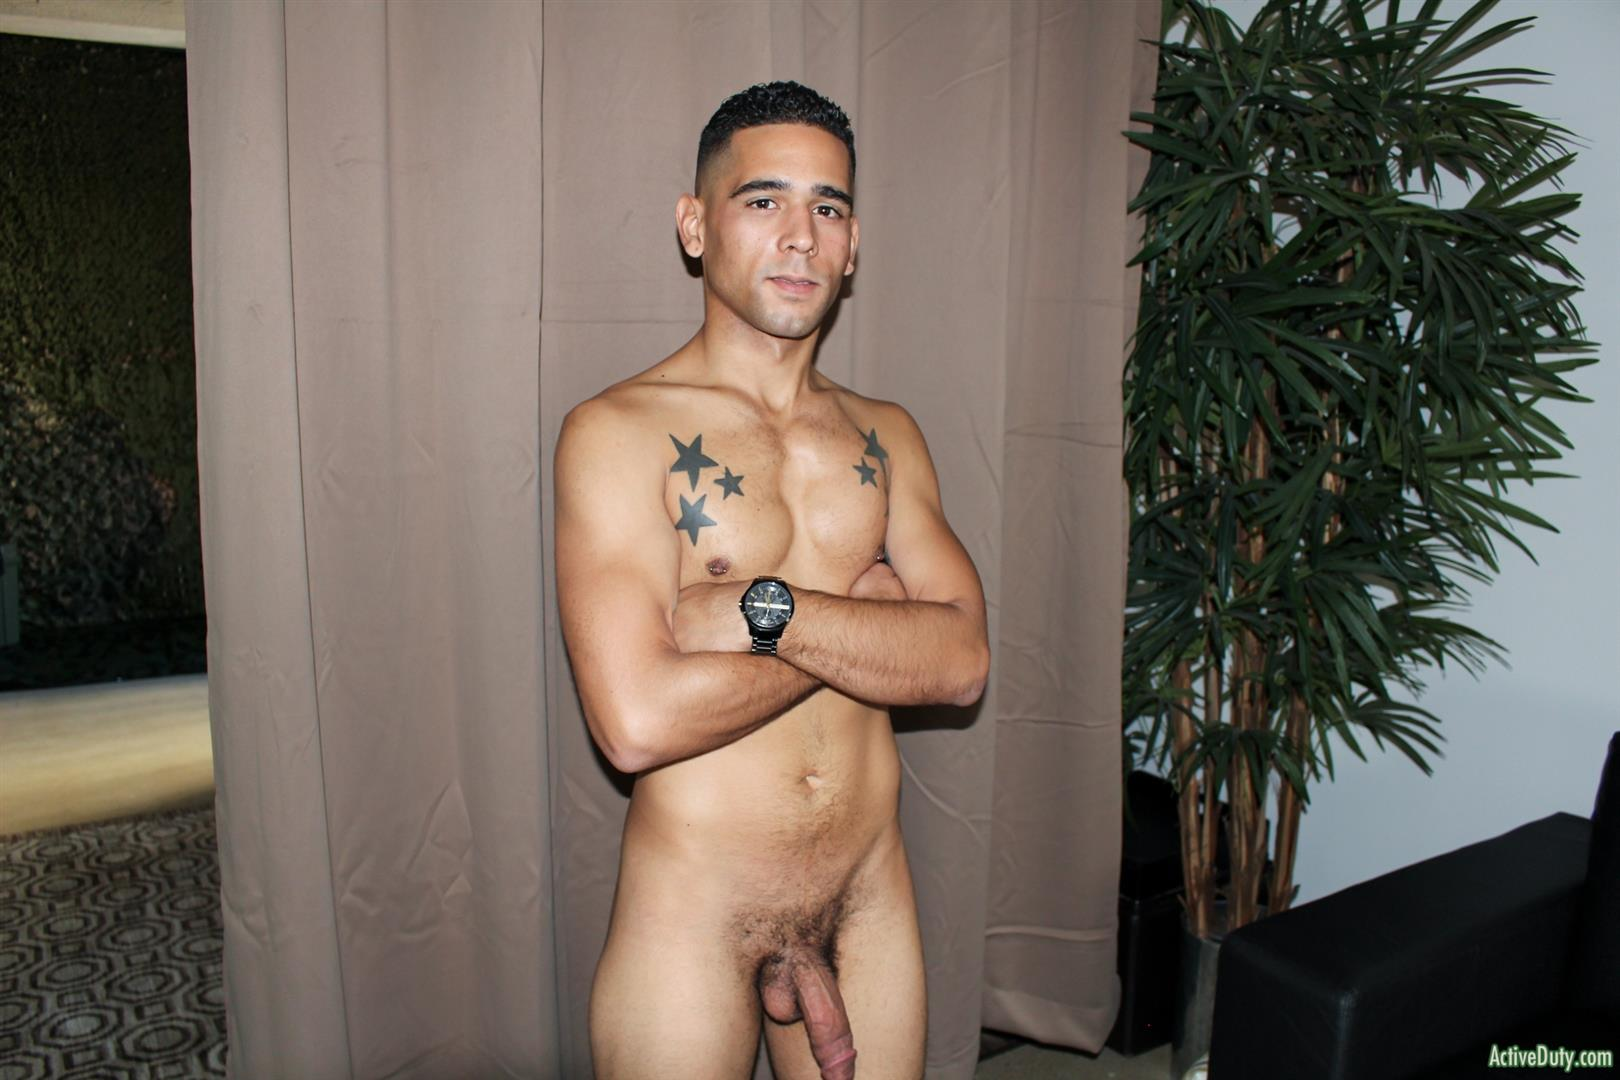 Active-Duty-Rossi-Thick-Dick-Naked-Soldier-Jerking-Off-Video-11 Thick Dick Army Soldier Jerks Out A Creamy Load Of Cum